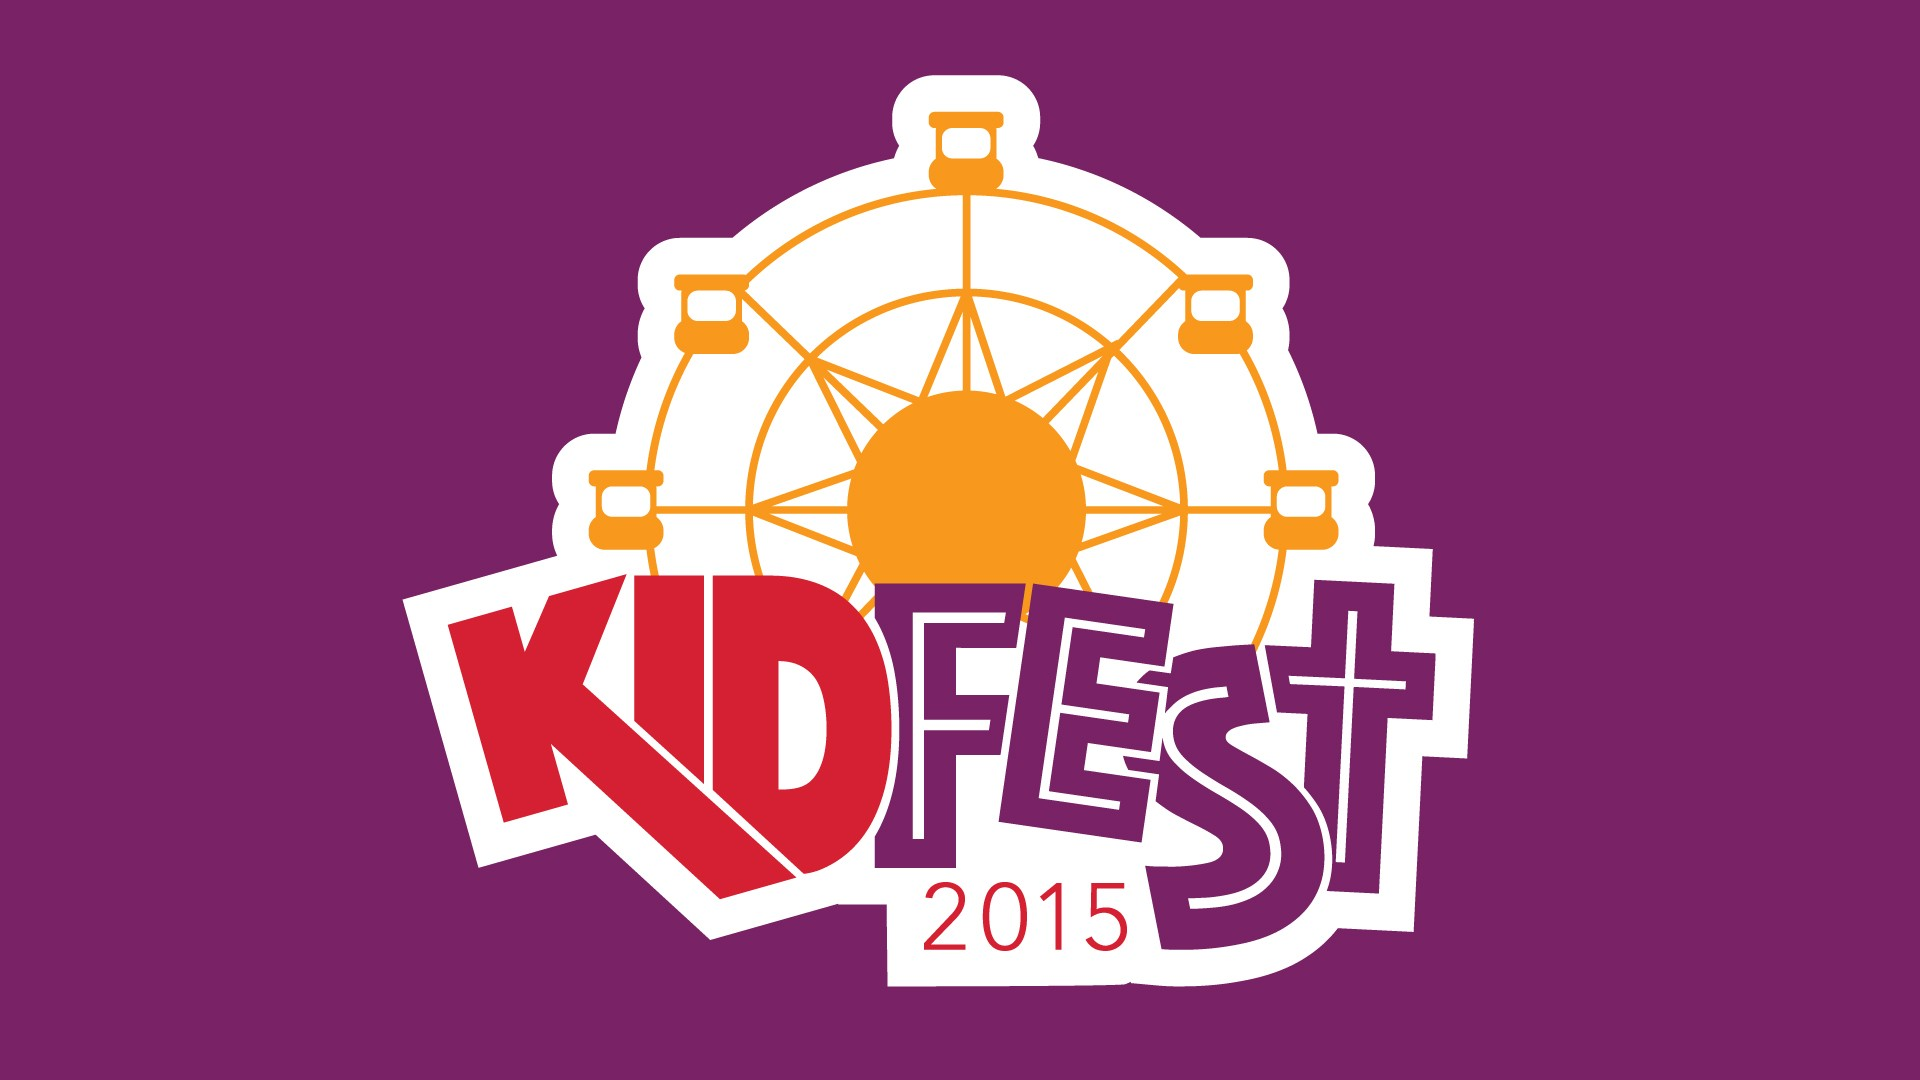 KidsFest-Graphic